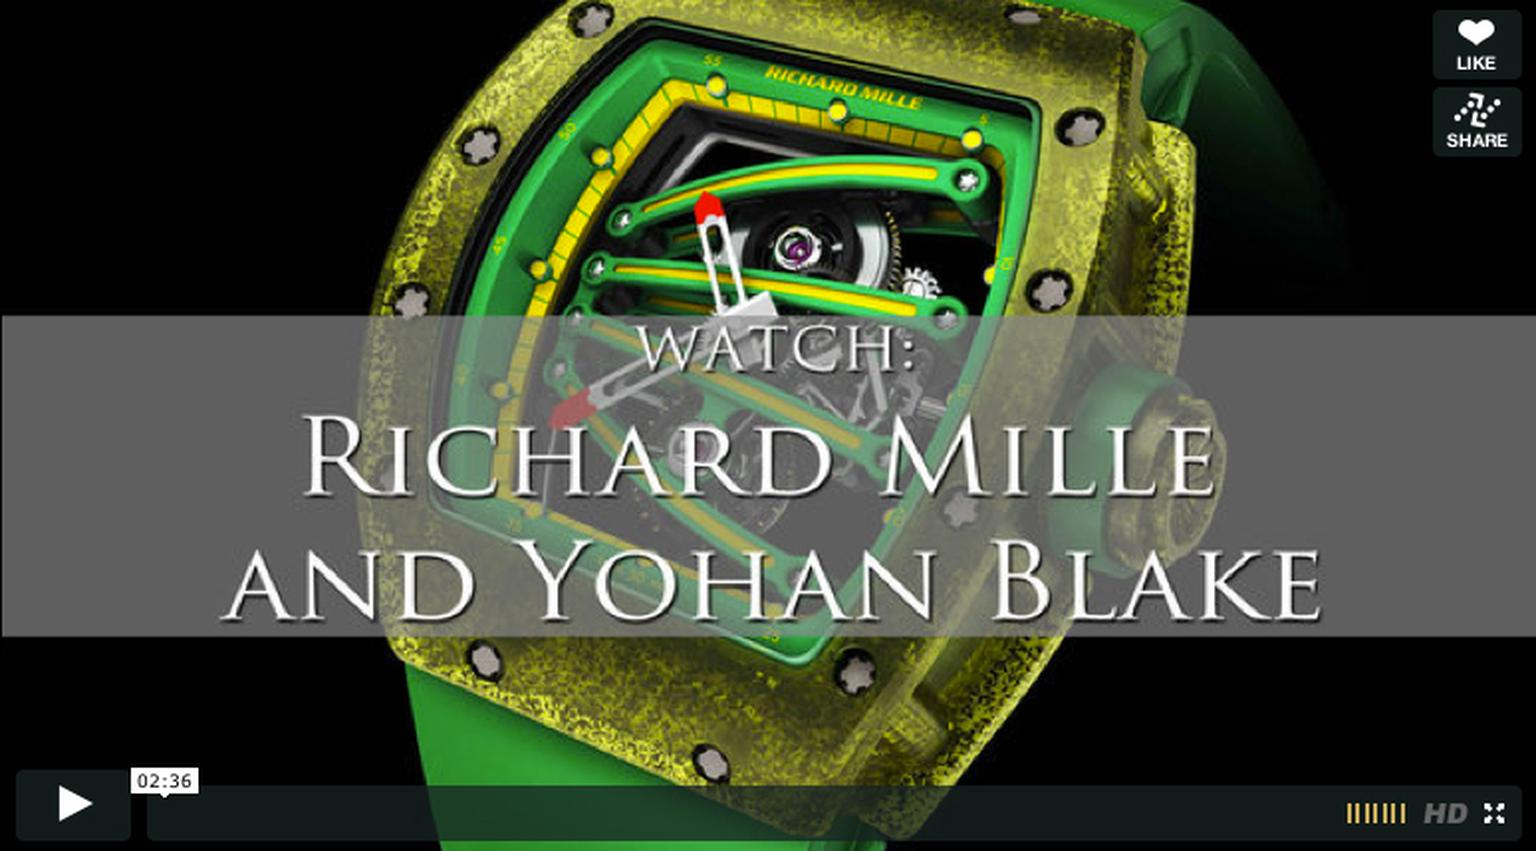 RichardMilleYohanBlakeVideo